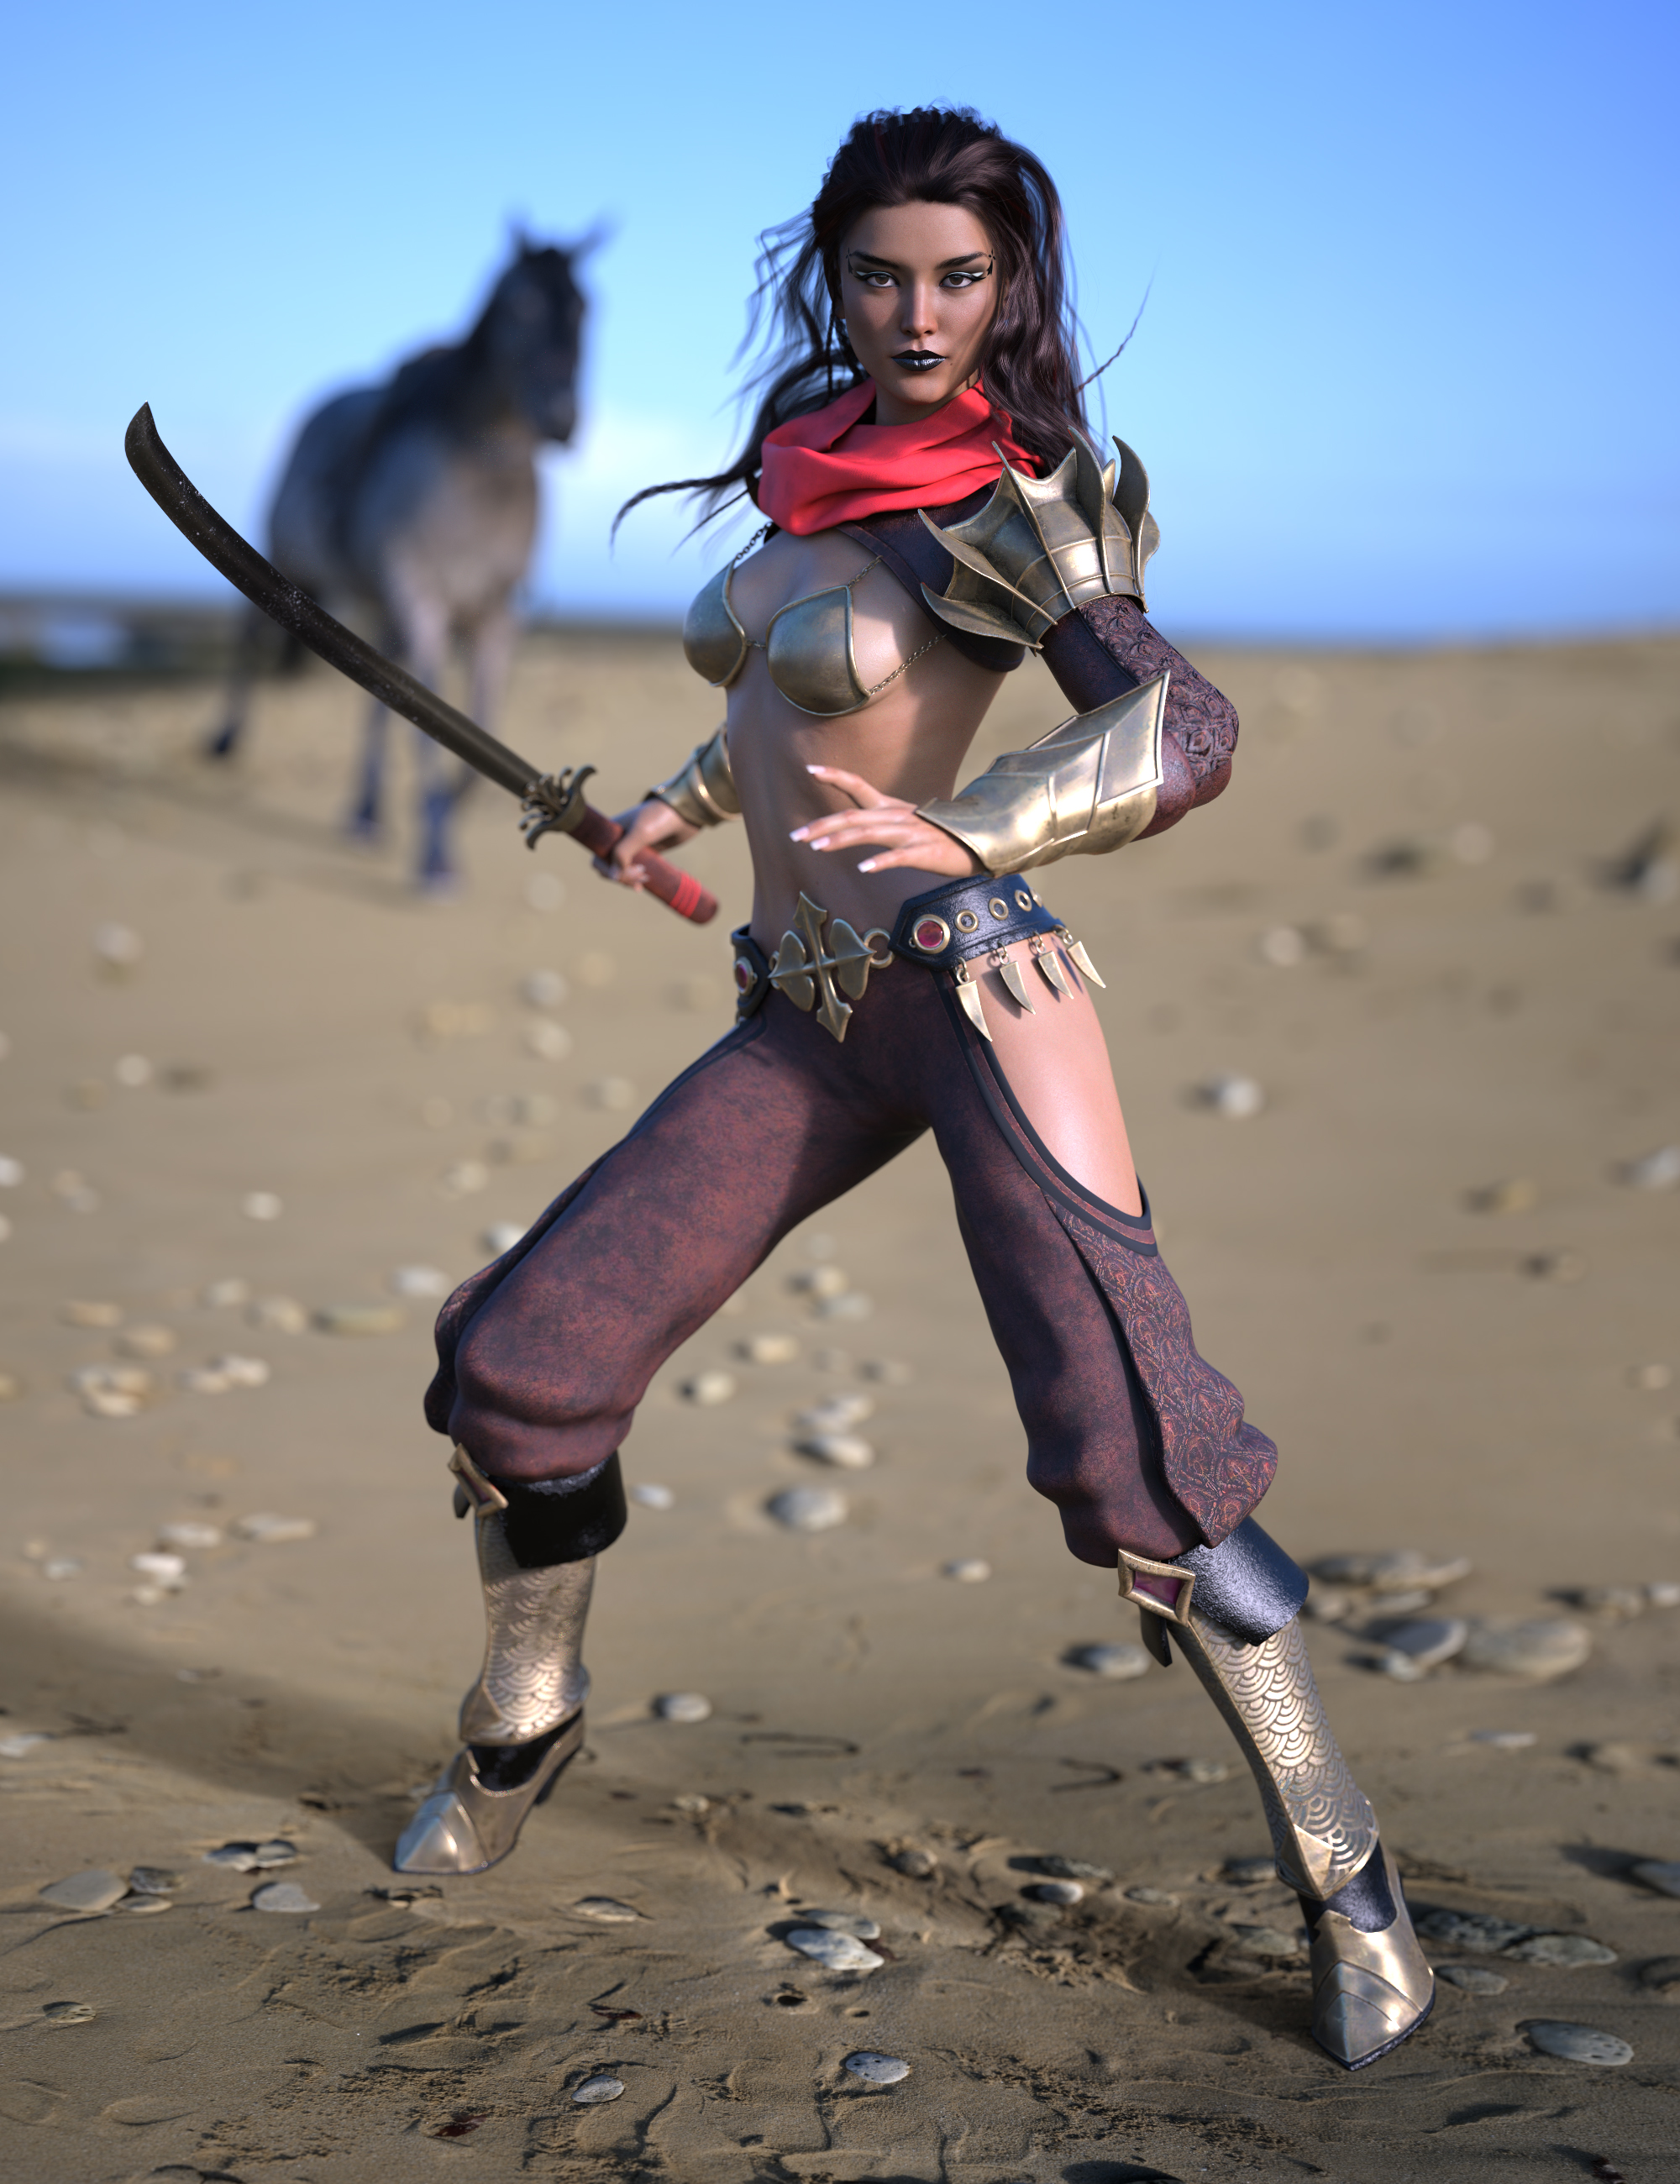 Eastern Warrior for Genesis 8 Female(s) by: Bluebird 3dMoonscape GraphicsRavenhairSade, 3D Models by Daz 3D